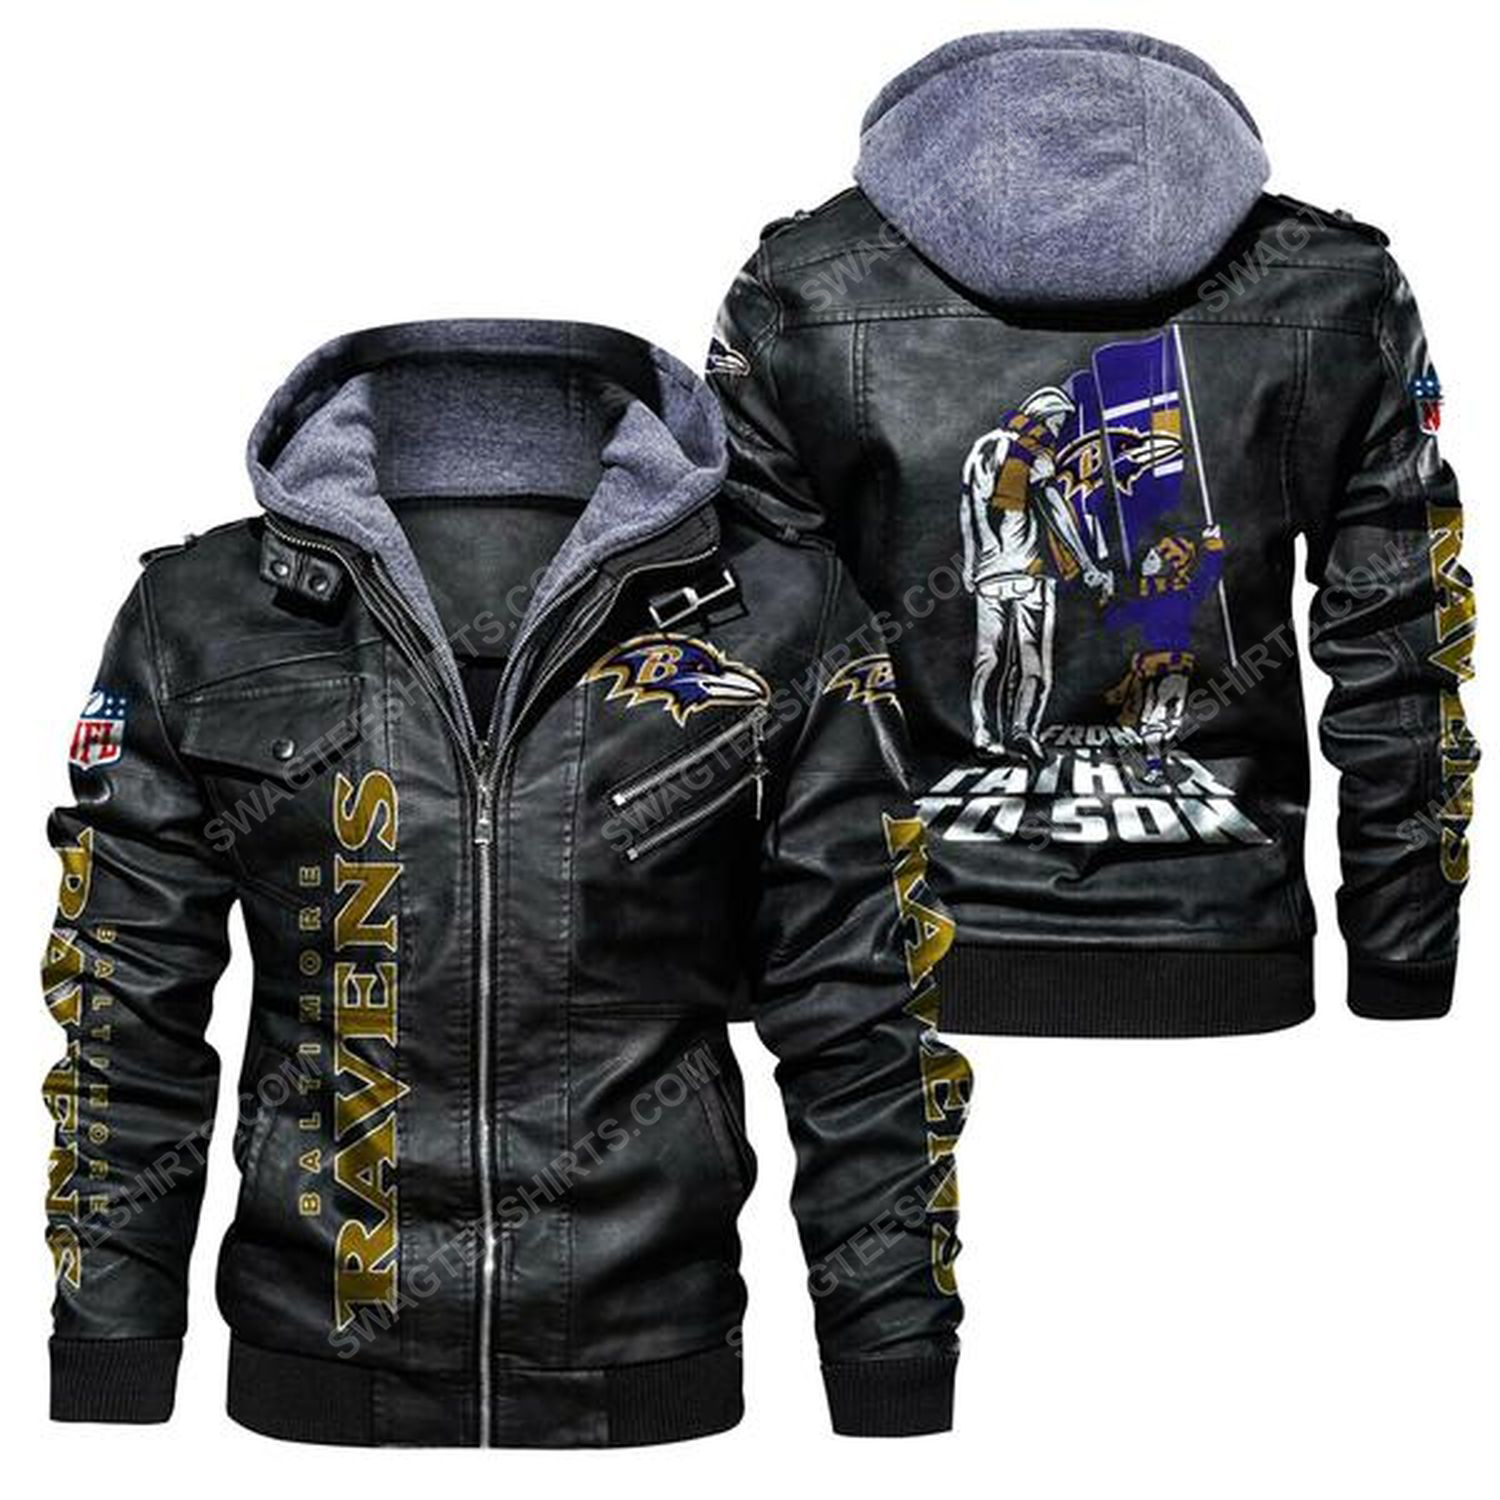 National football league baltimore ravens from father to son leather jacket - black